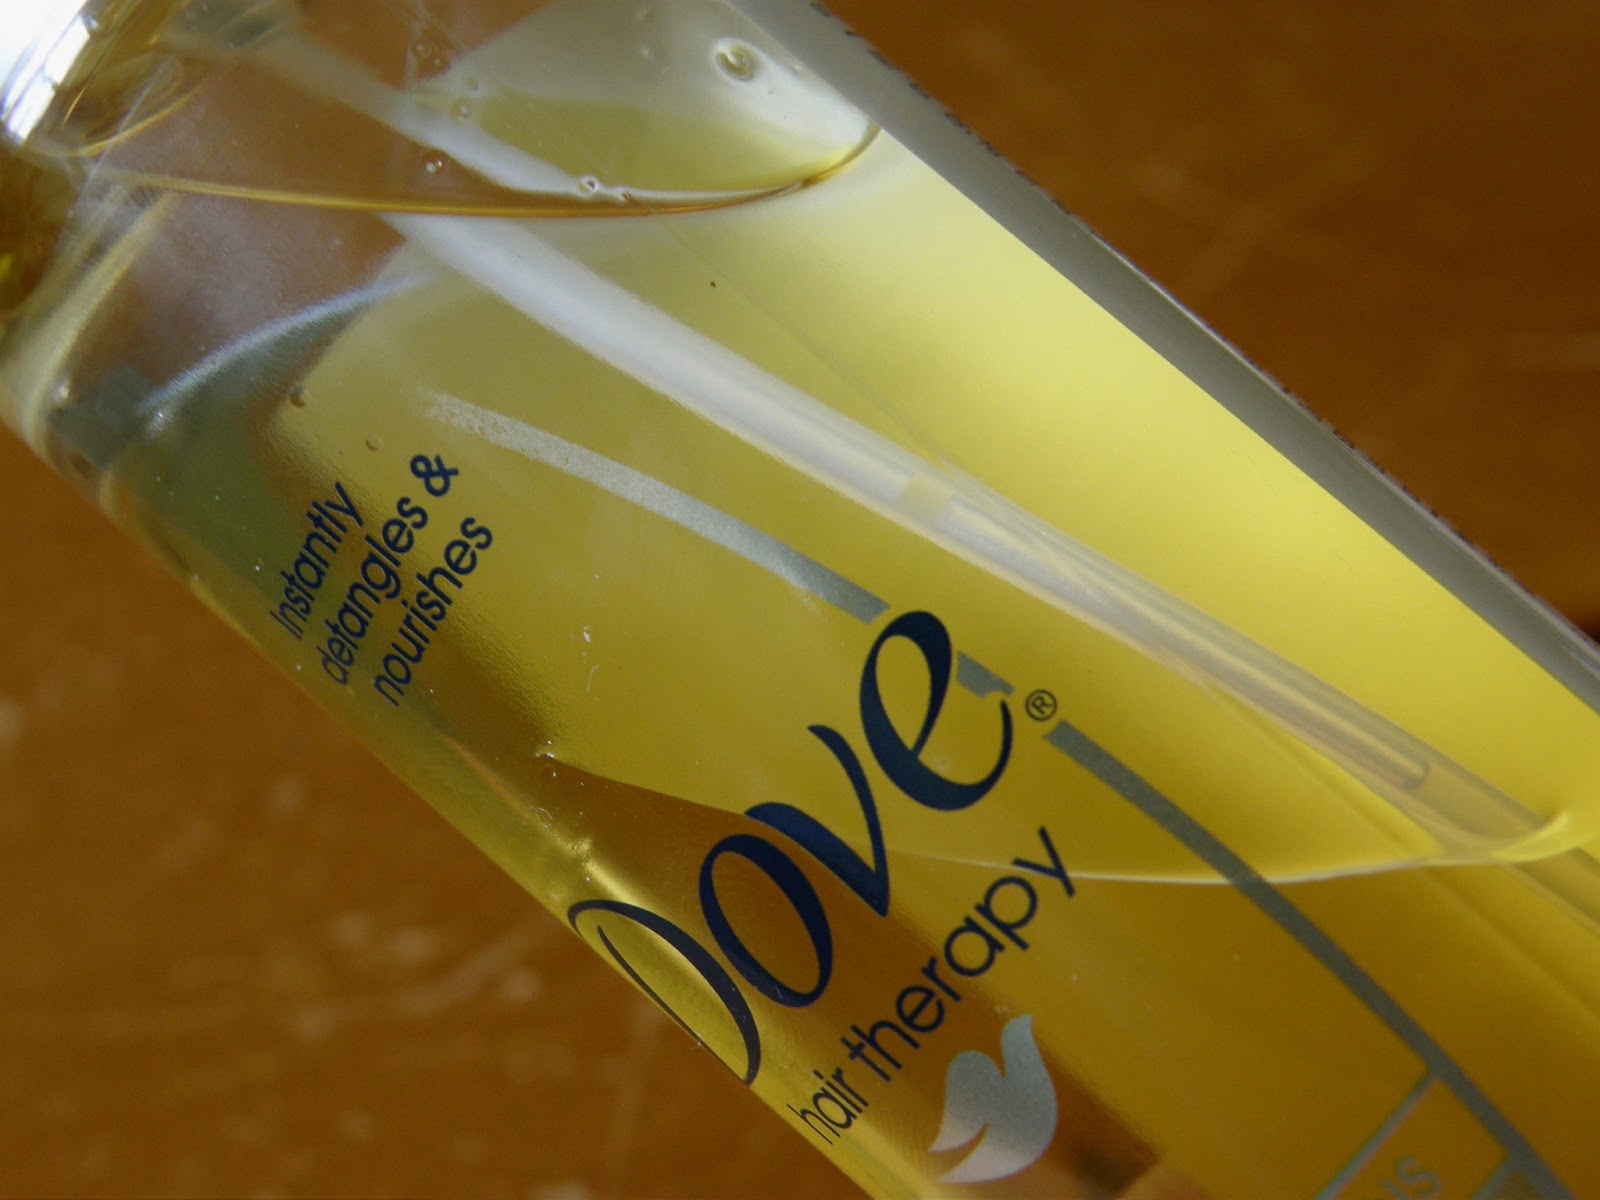 Dove Oil Care Detangler Review Dove's Nourishing Oil Care